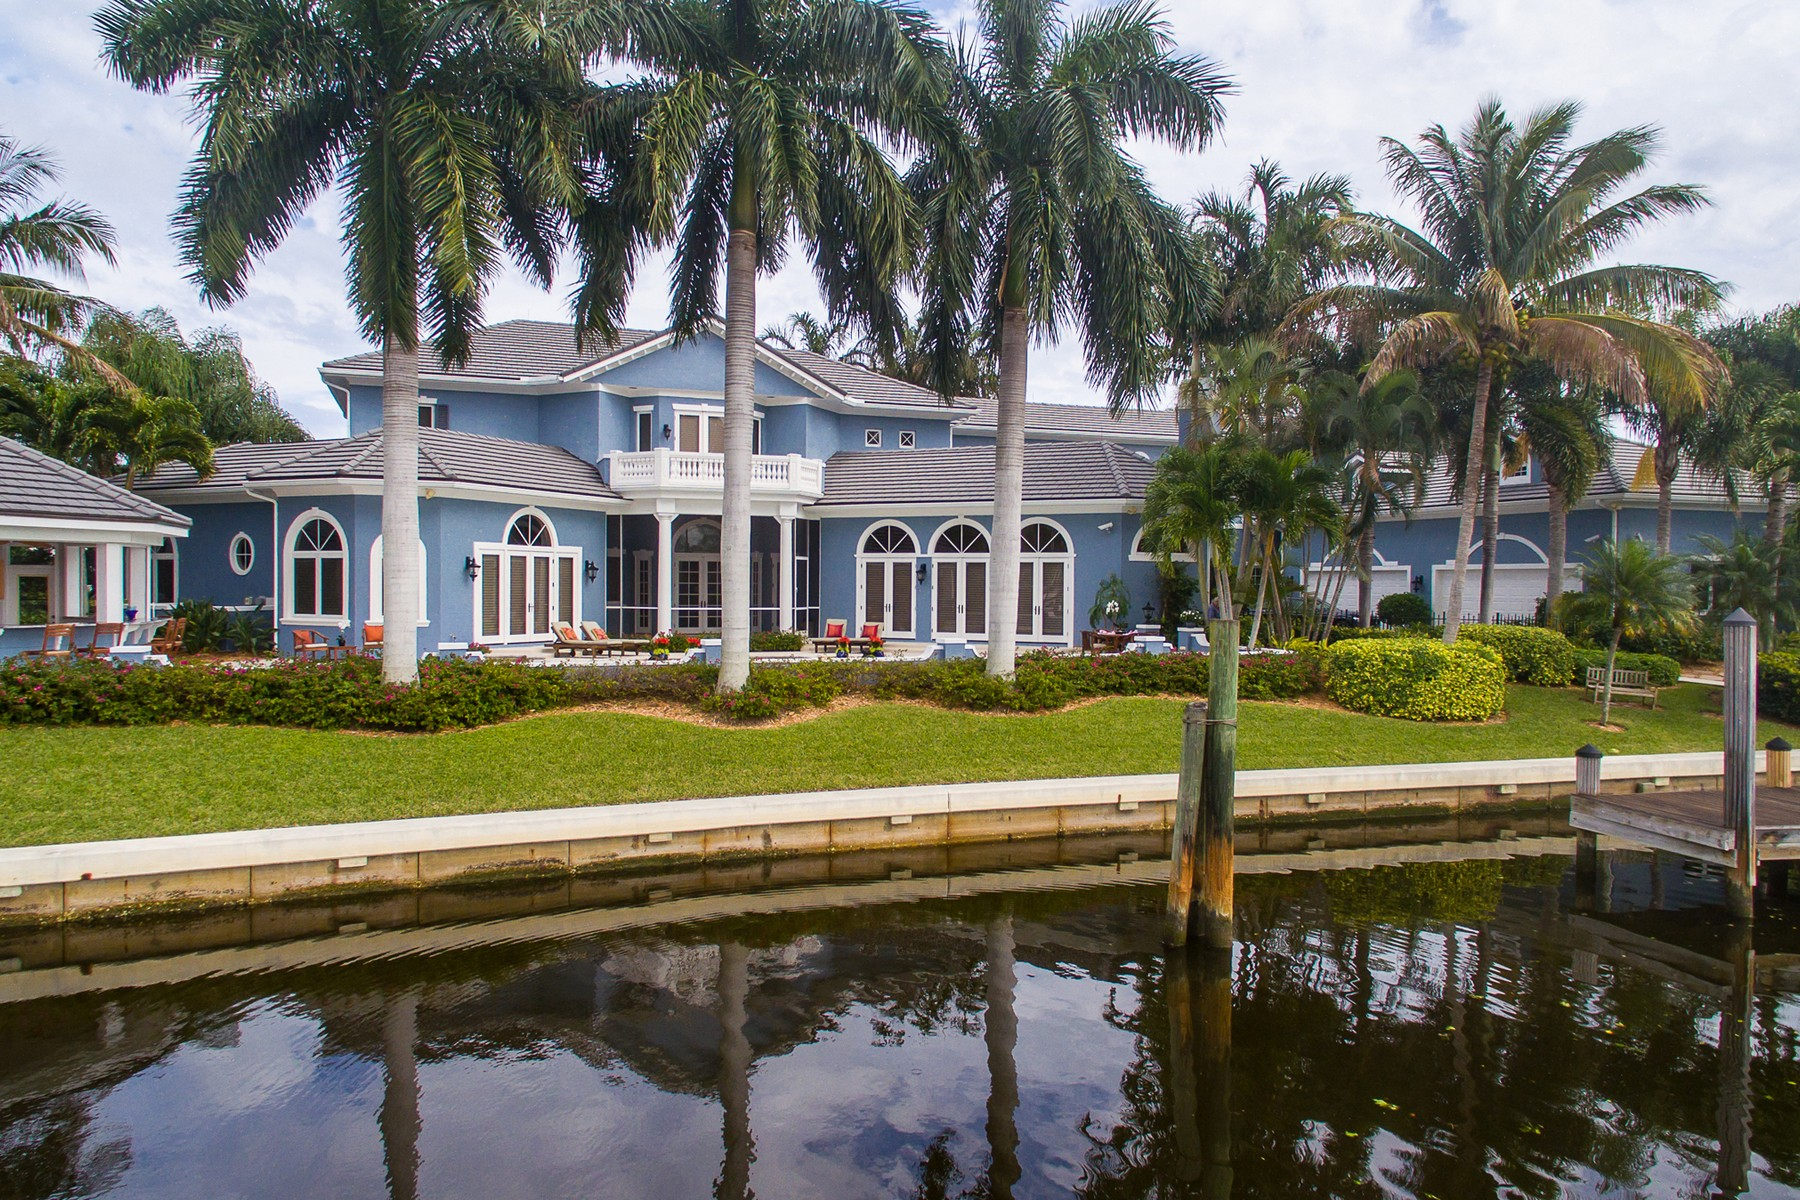 Maison unifamiliale pour l Vente à Yachtsman Dream Home in the Moorings 101 Springline Drive Vero Beach, Florida, 32963 États-Unis